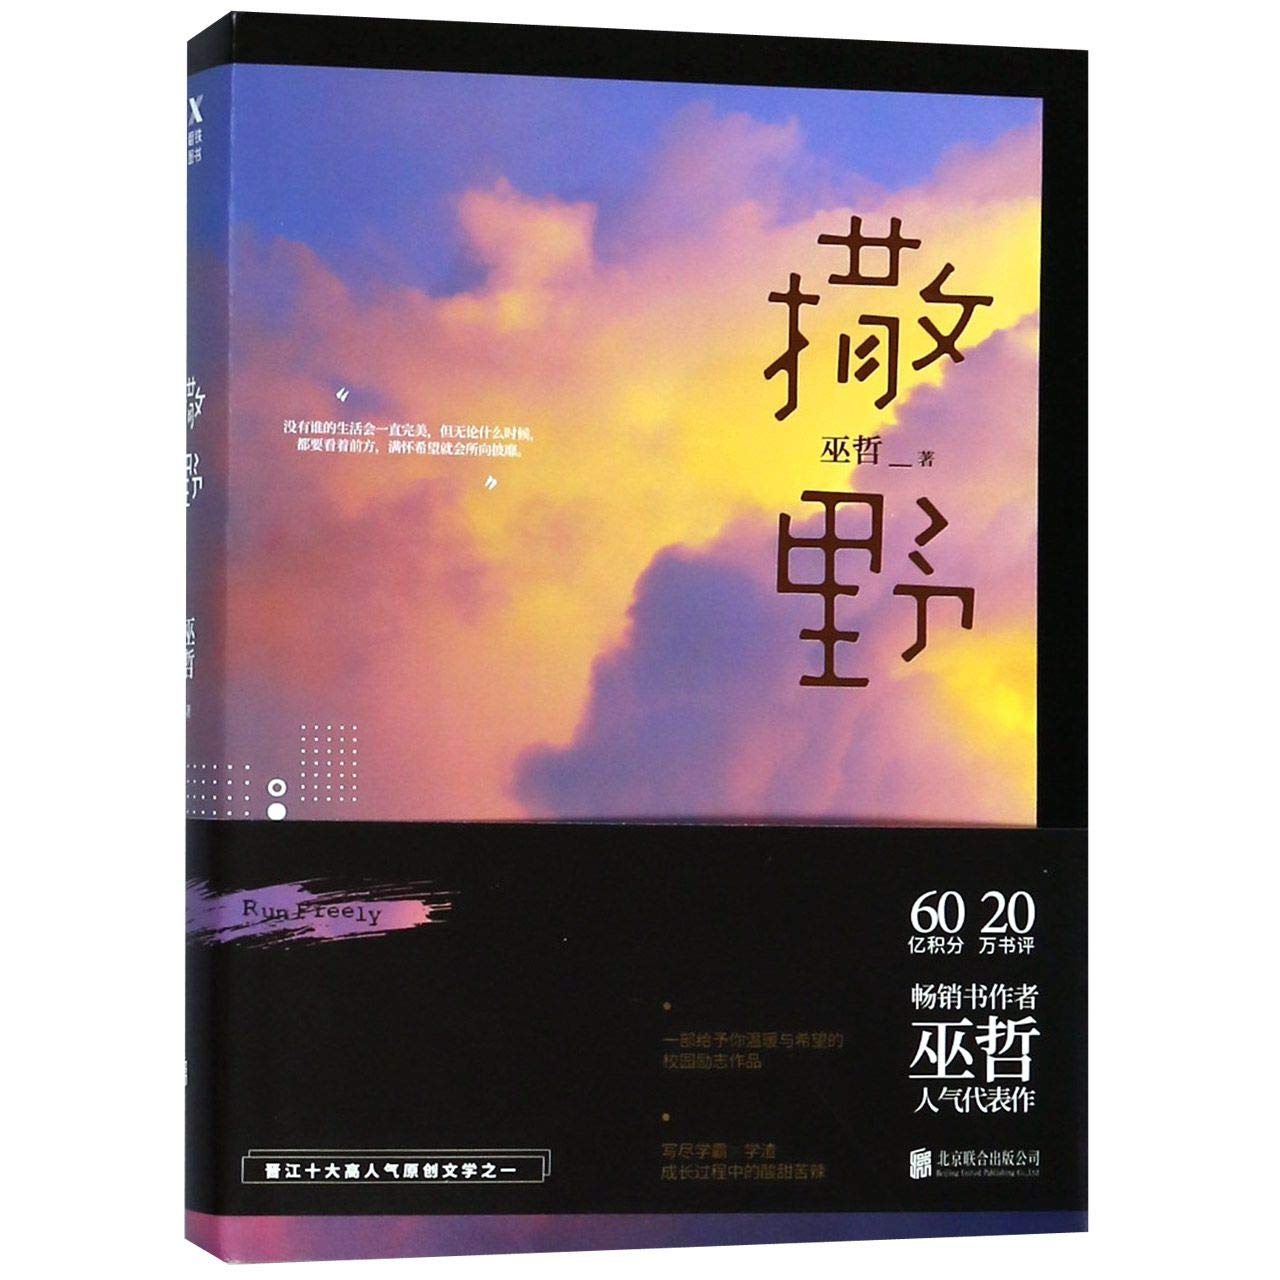 Run Freely (Chinese Edition)